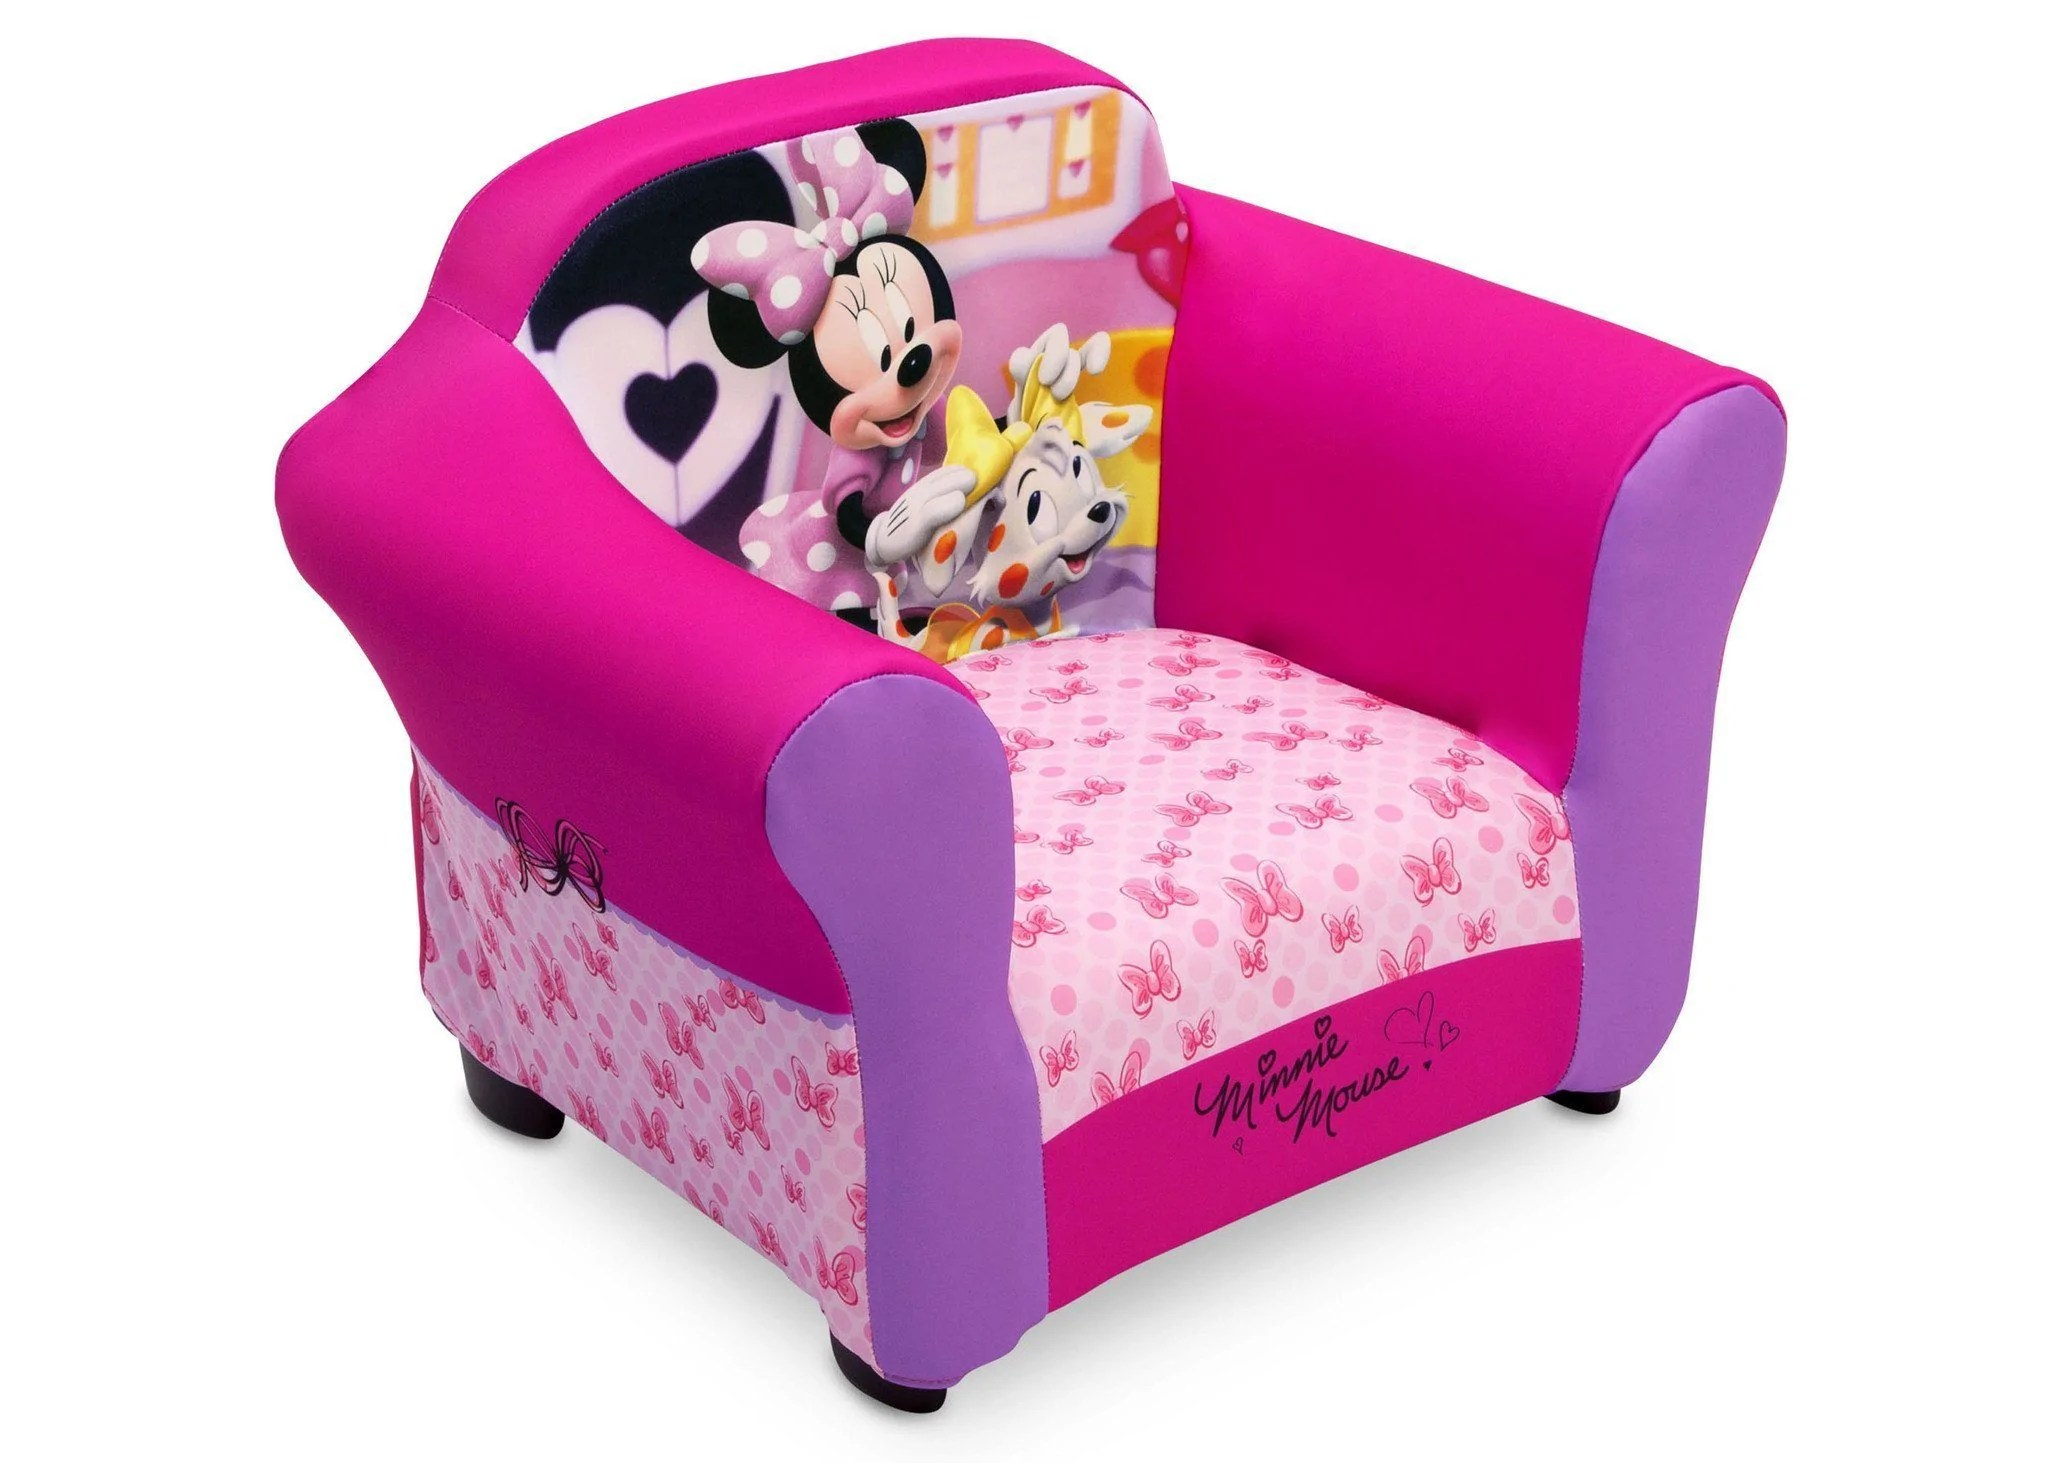 minnie mouse upholstered chair beach walmart disney with sculpted